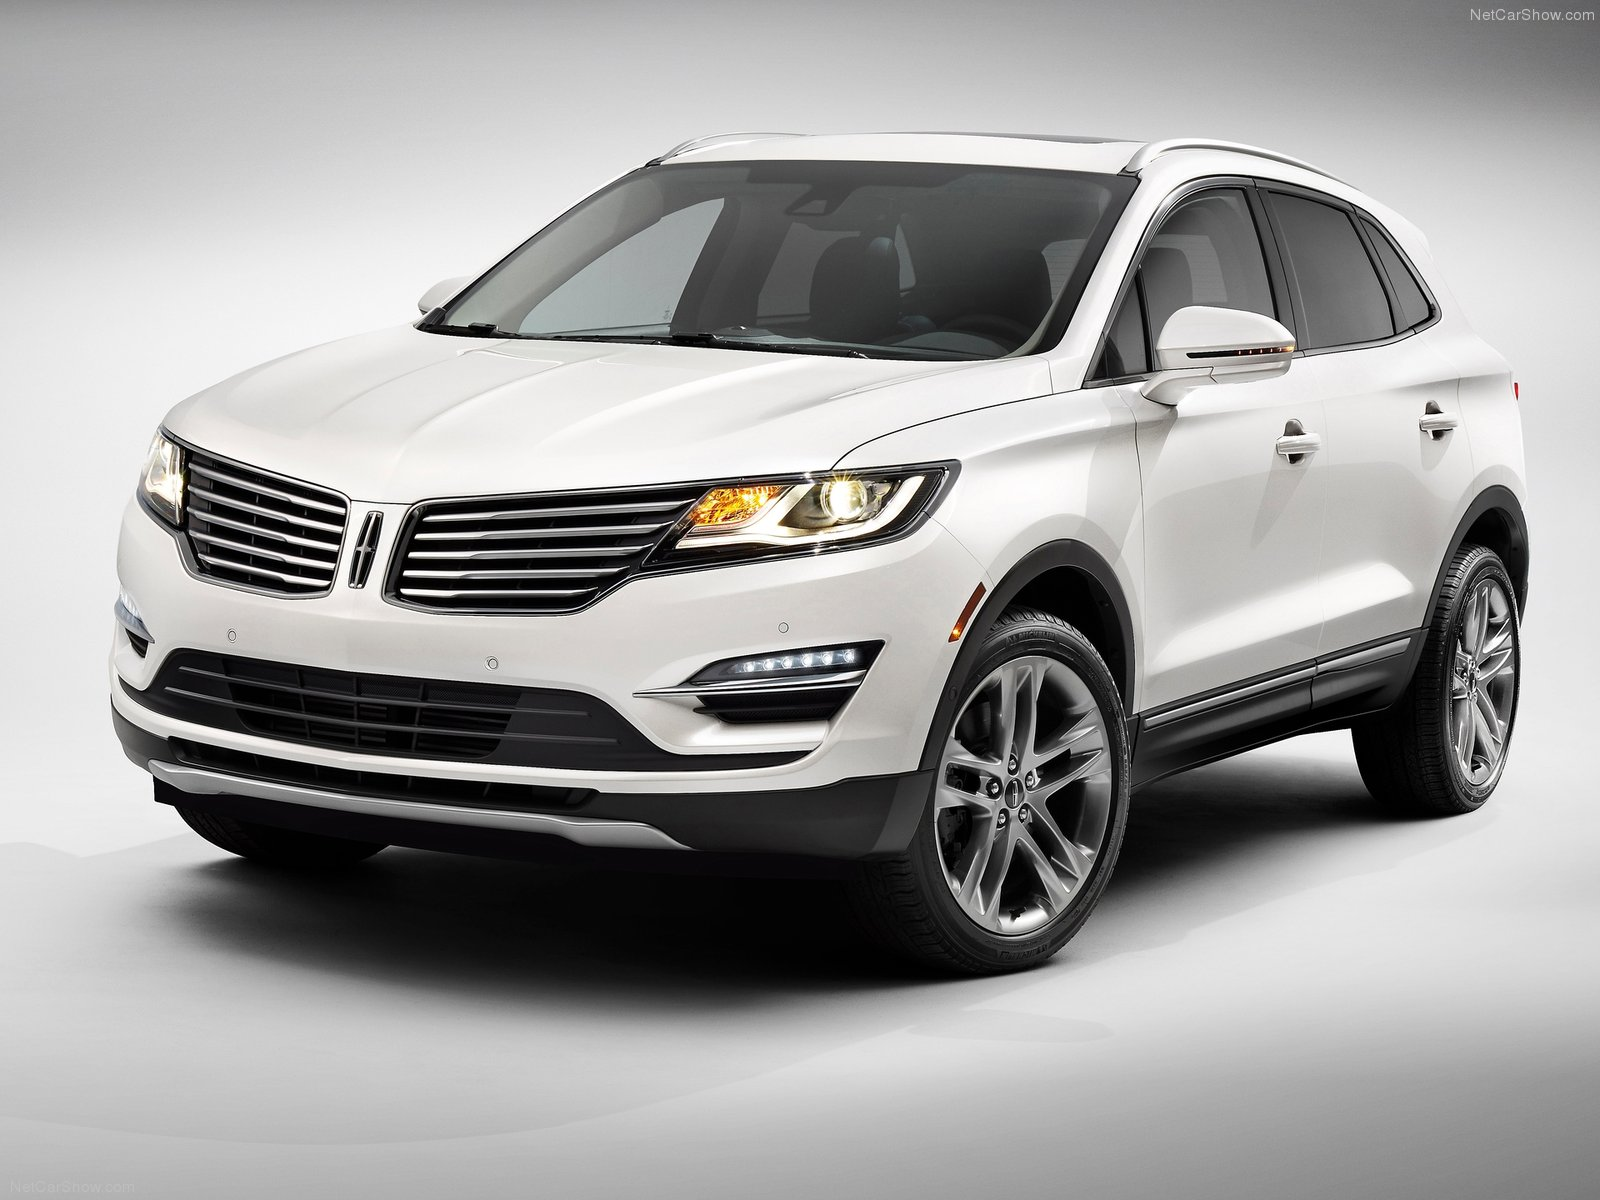 2015 Lincoln Mkx #9